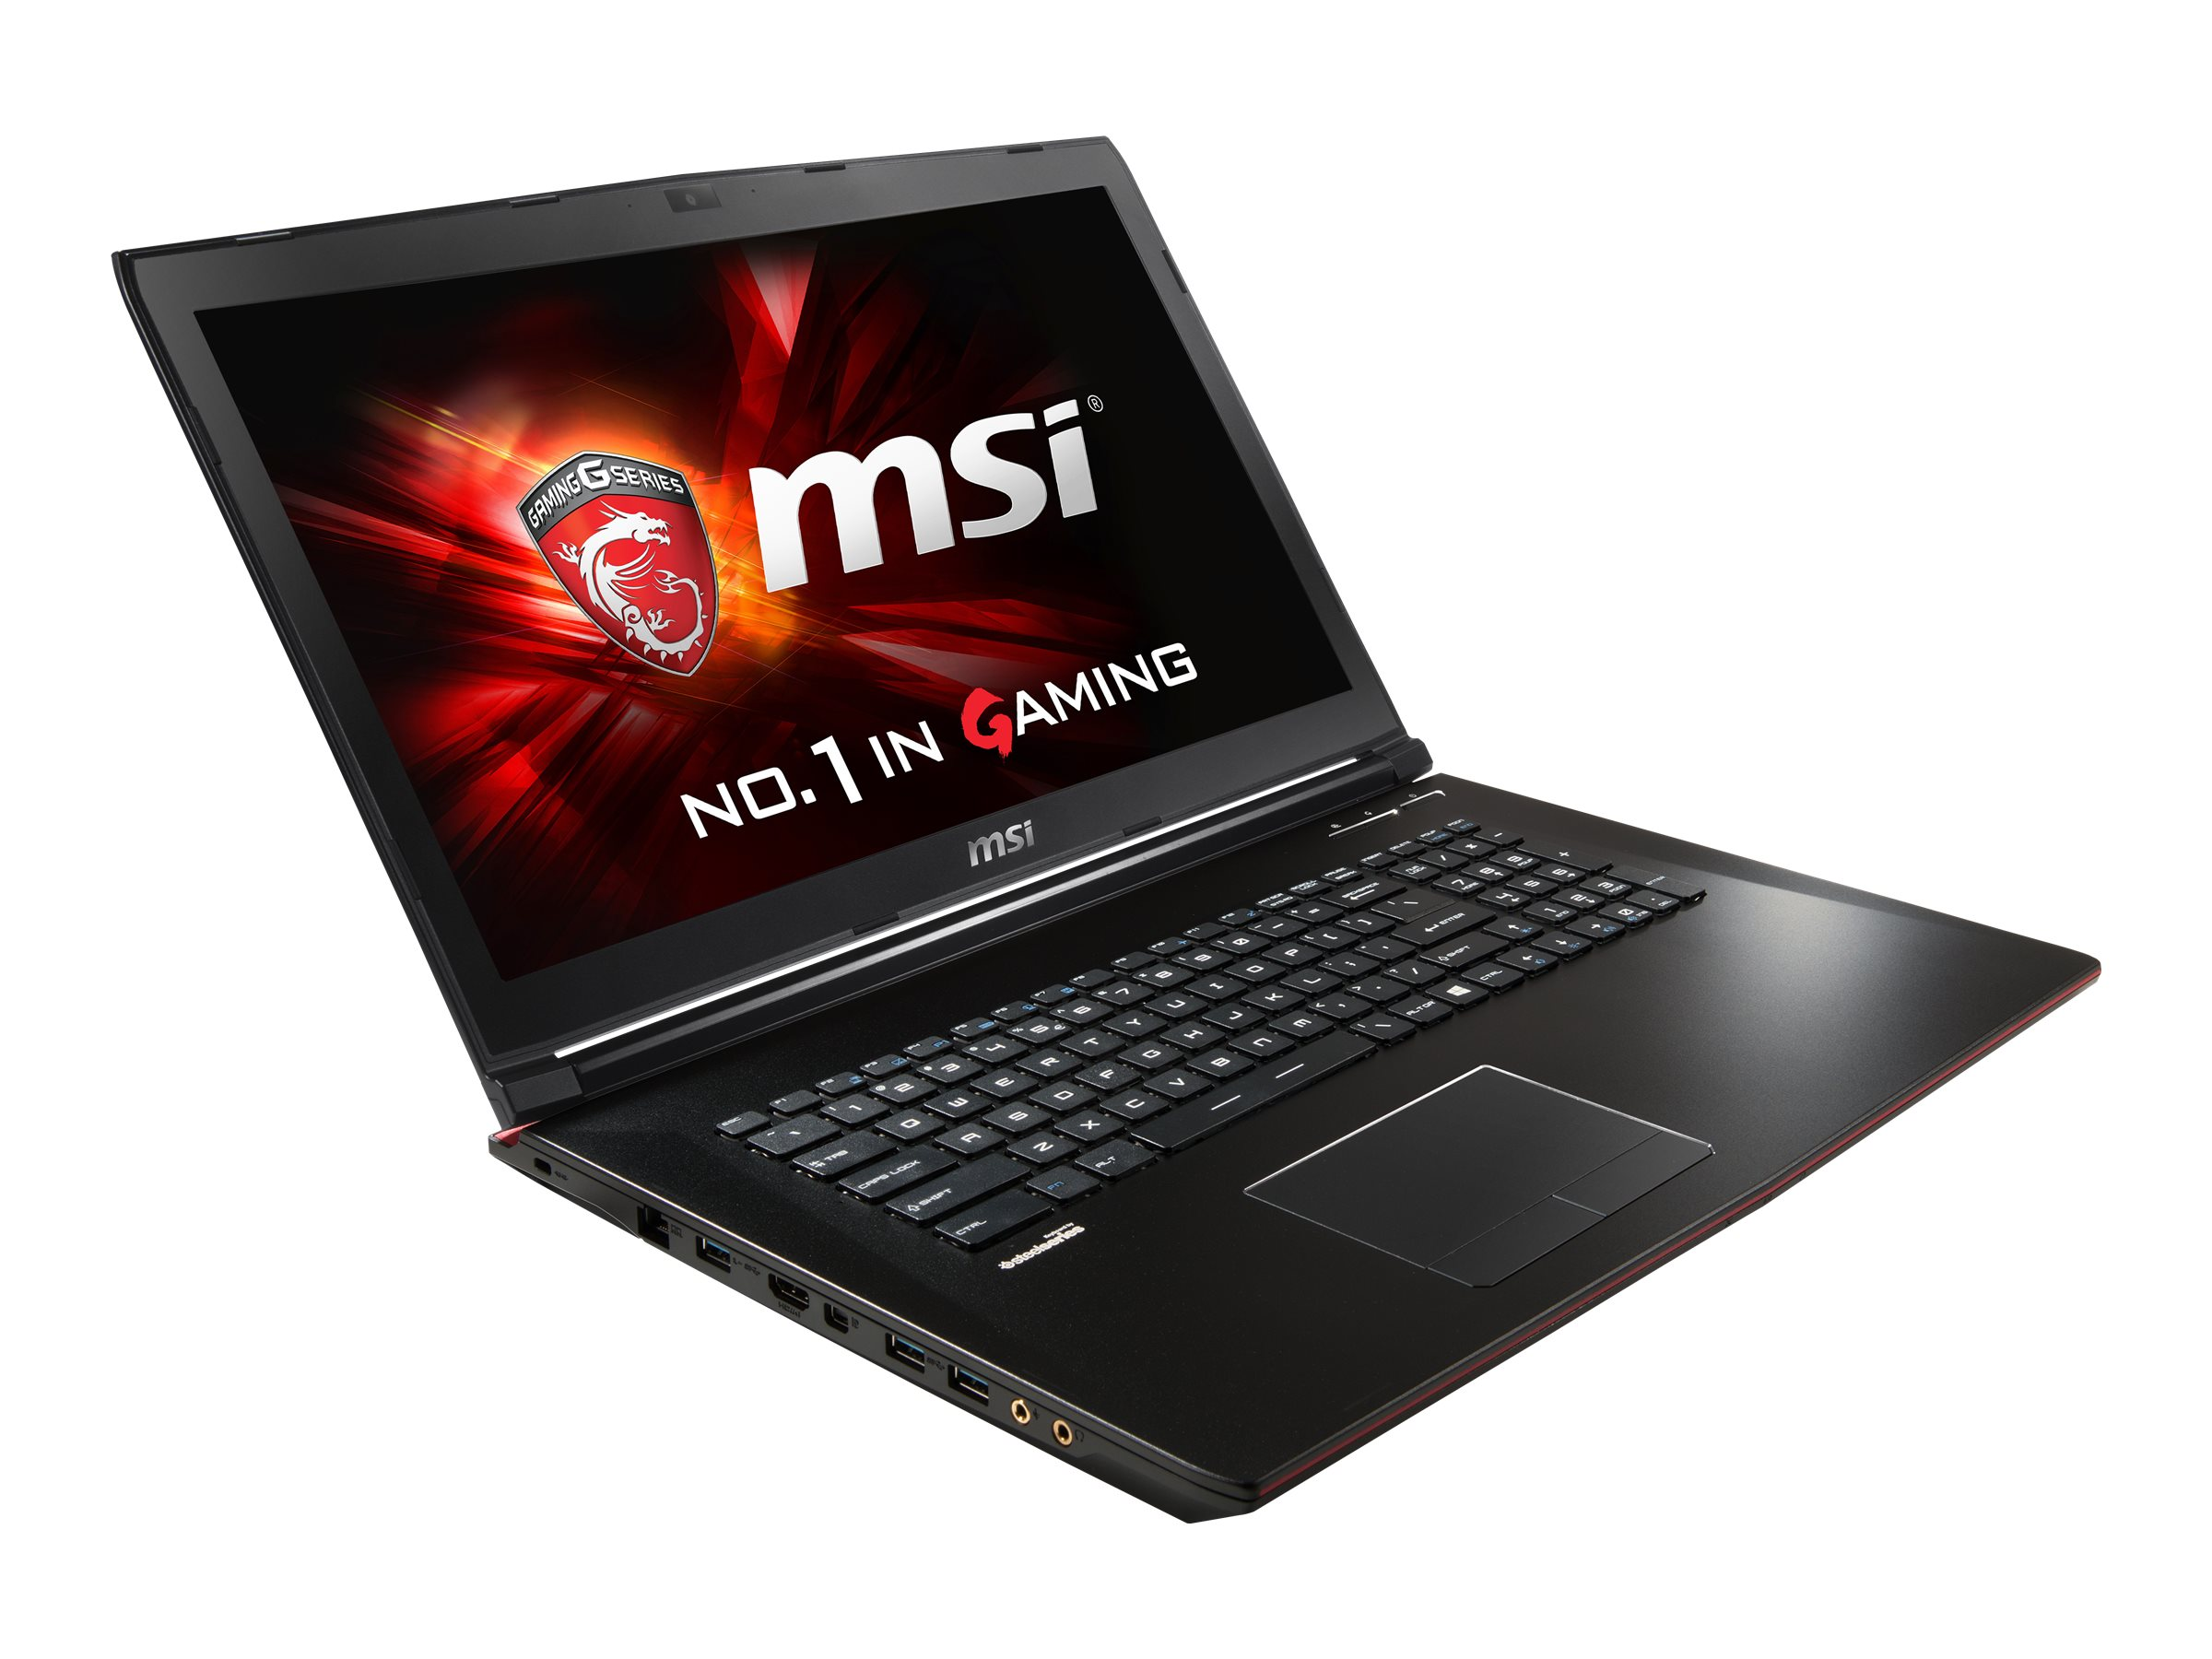 MSI GP72 Leopard Pro Core i7-6700HQ 2.6GHz 16GB 1TB+128GB SSD DVD SM ac BT WC 960M 17.3 FHD W10